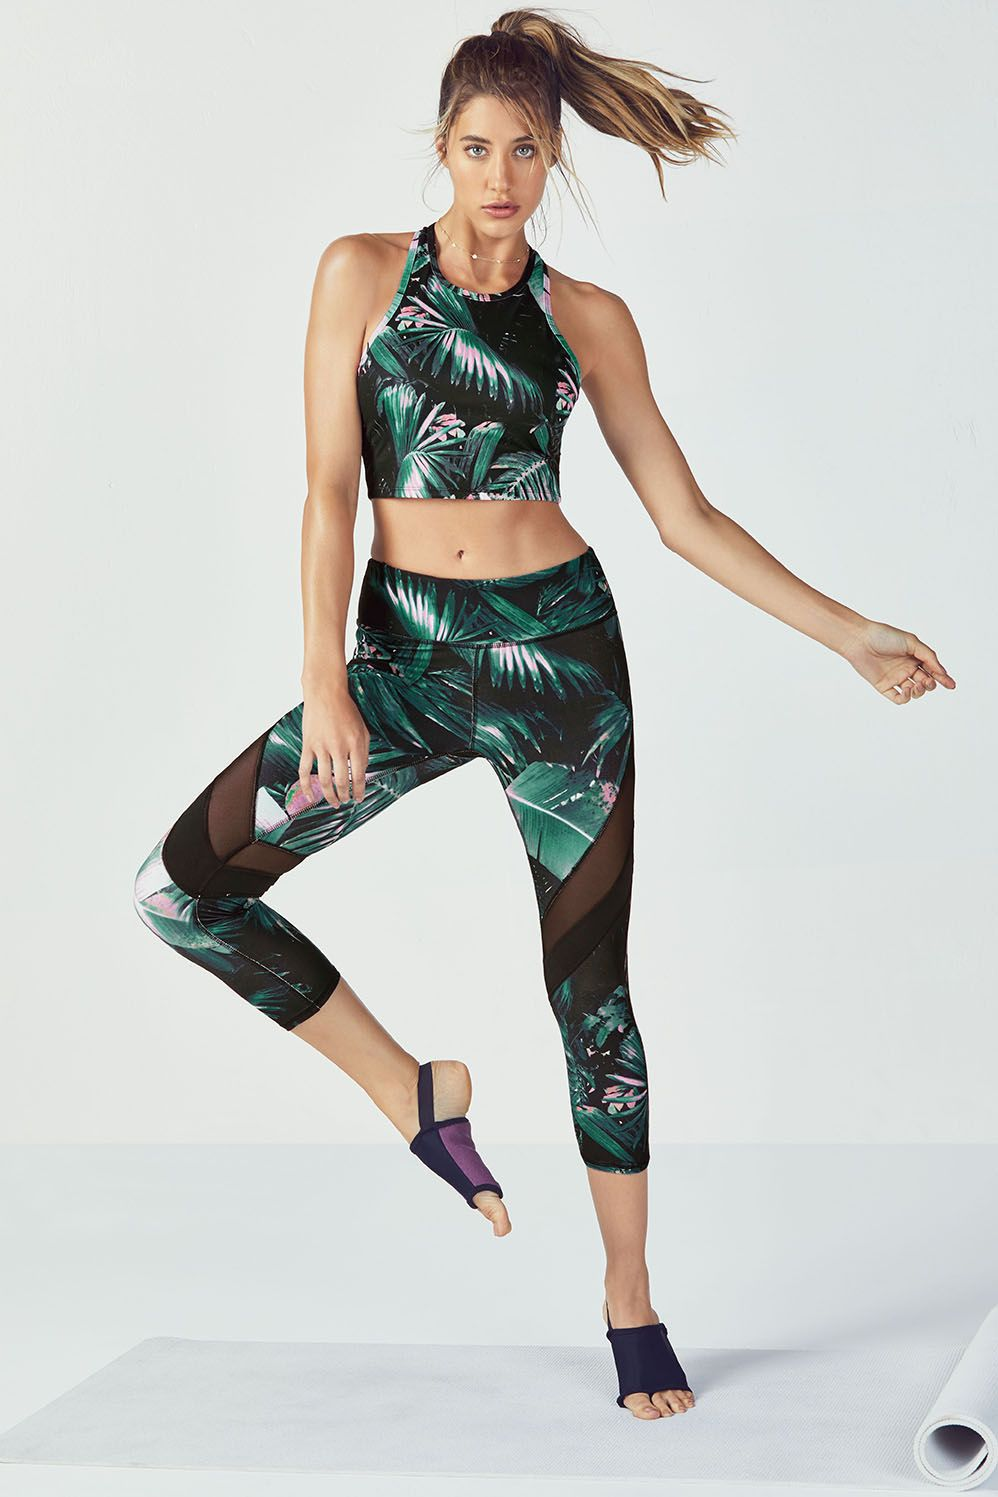 buy popular e47cf 8b791 Norah Outfit Outfit - günstig kaufen bei Fabletics ...